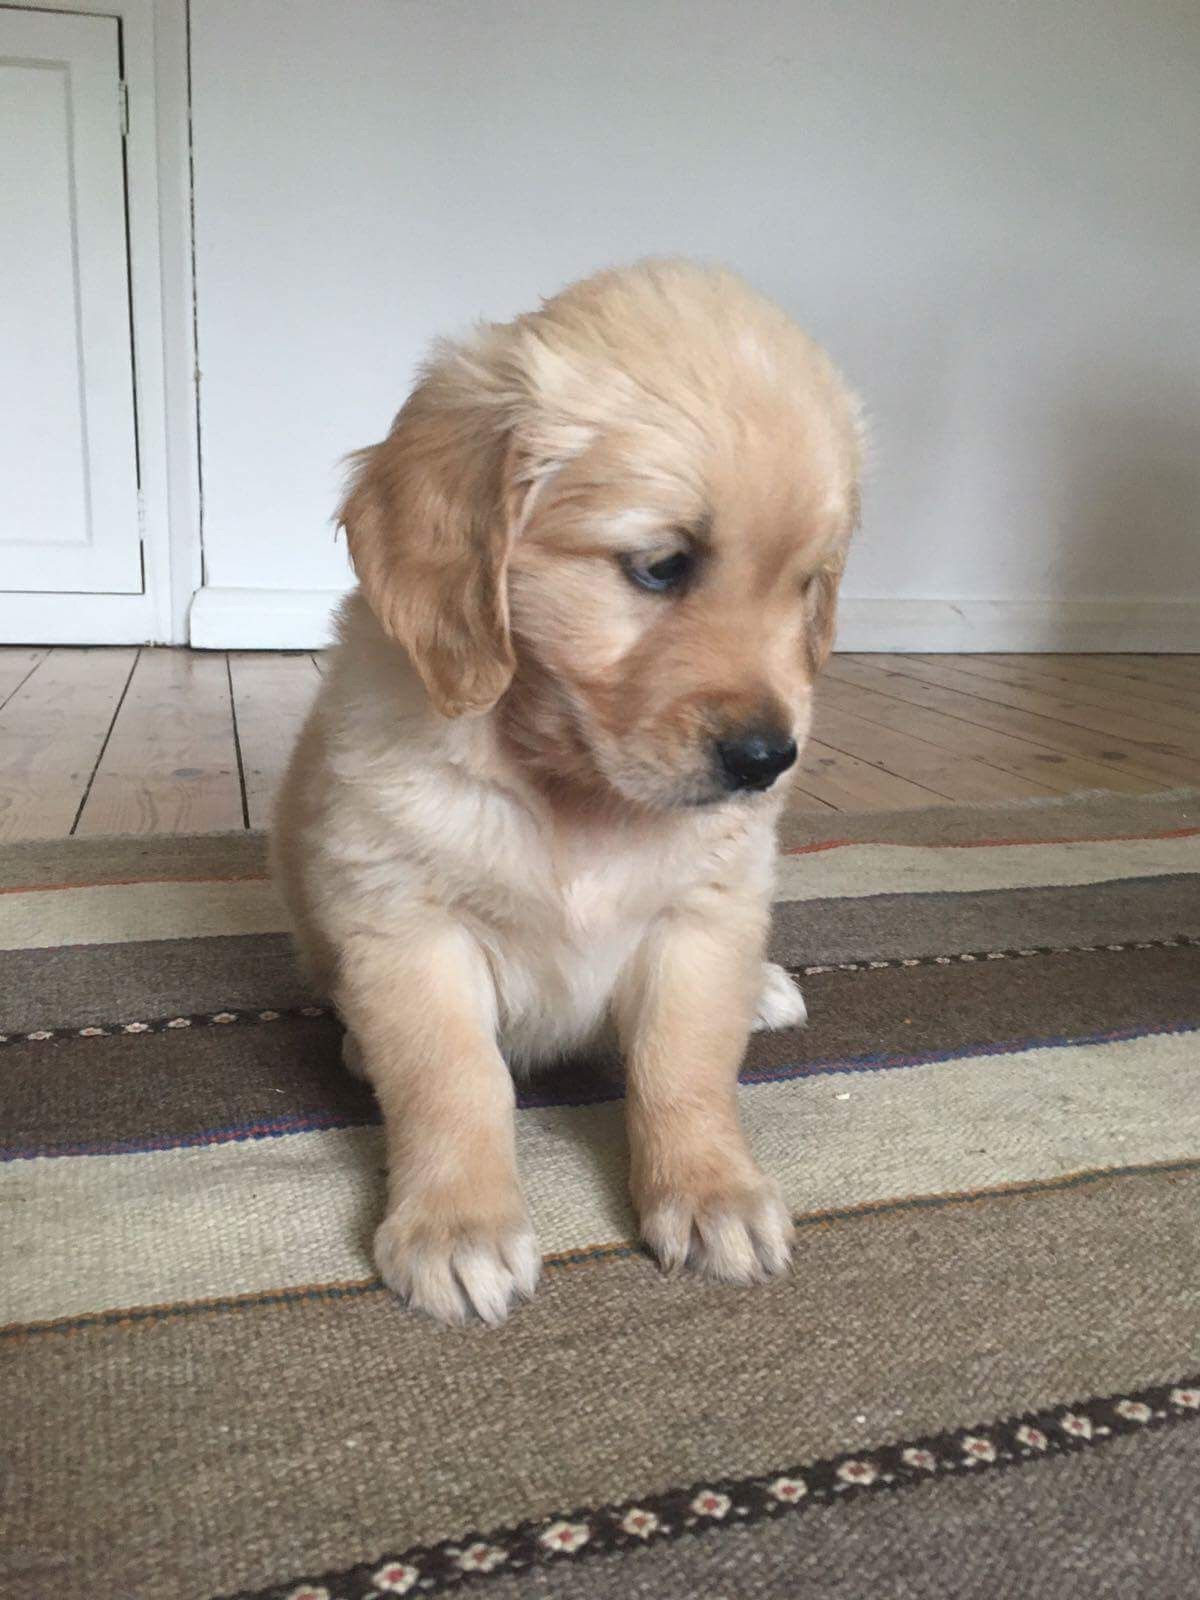 Buddy The Golden Retriever Puppy At 6 1 2 Weeks Golden Retriever Golden Retriever Puppy Puppies